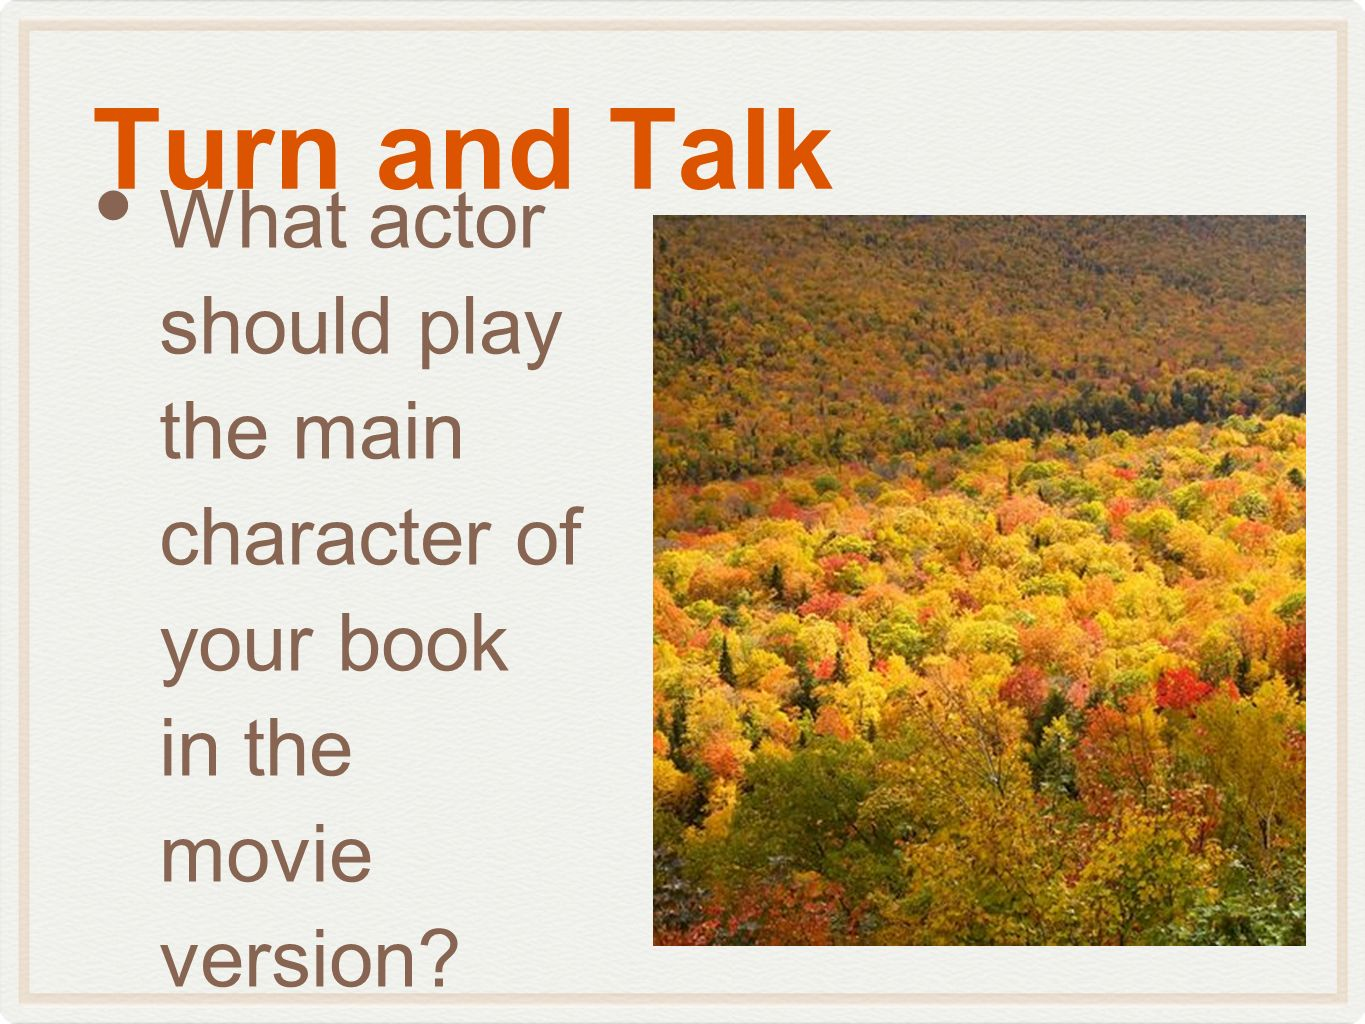 Turn and Talk What actor should play the main character of your book in the movie version